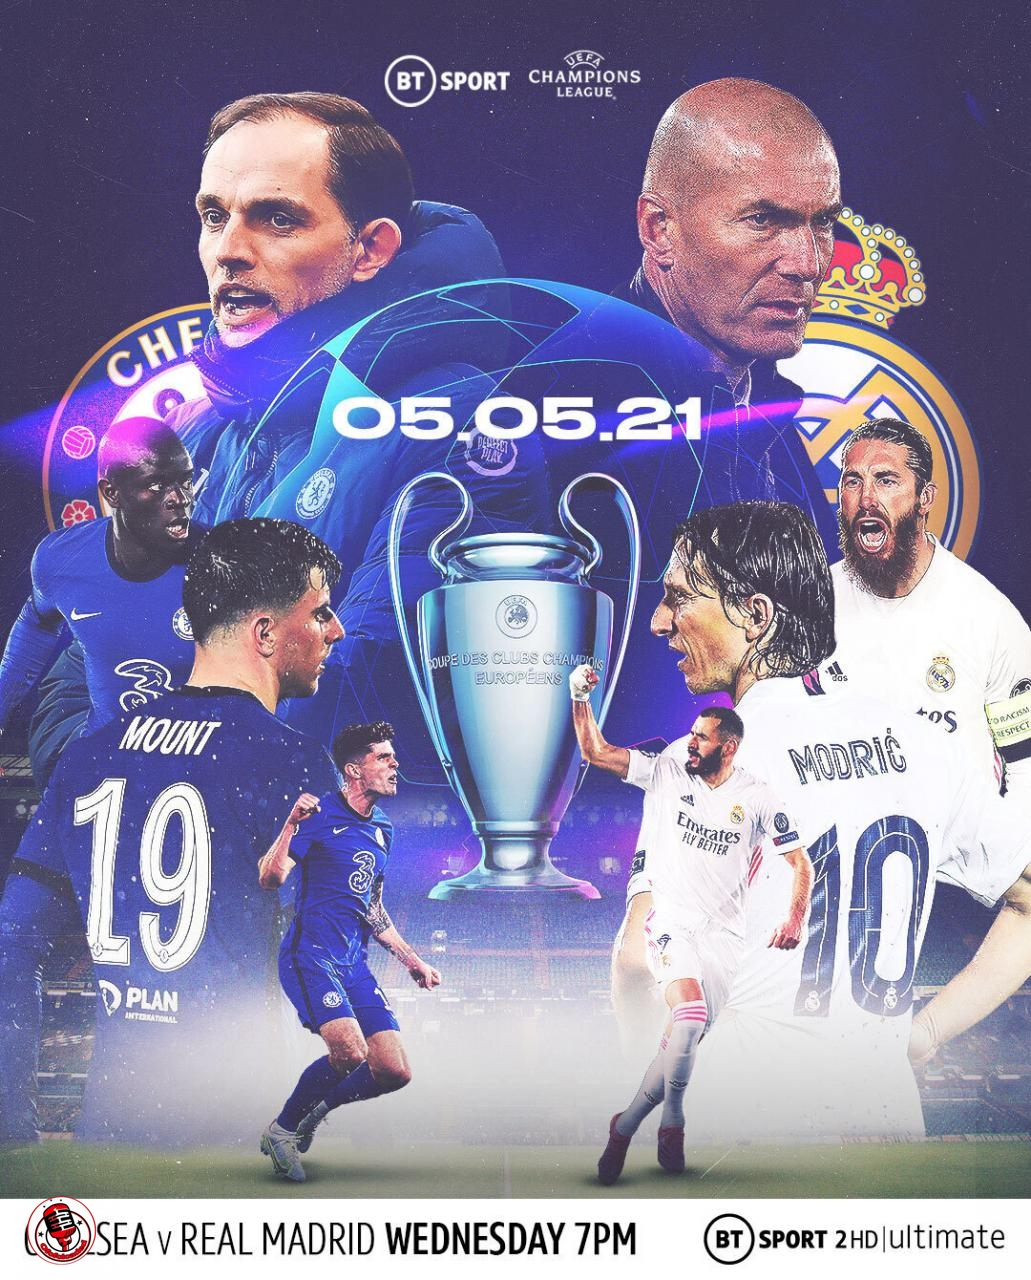 LIVE STREAM : Chelsea Vs Real Madrid [Watch Now] CHAMPIONS LEAGUE 2020/2021 #CHERMA #UCL #FOOTBALL #MADRID #CHELSEA